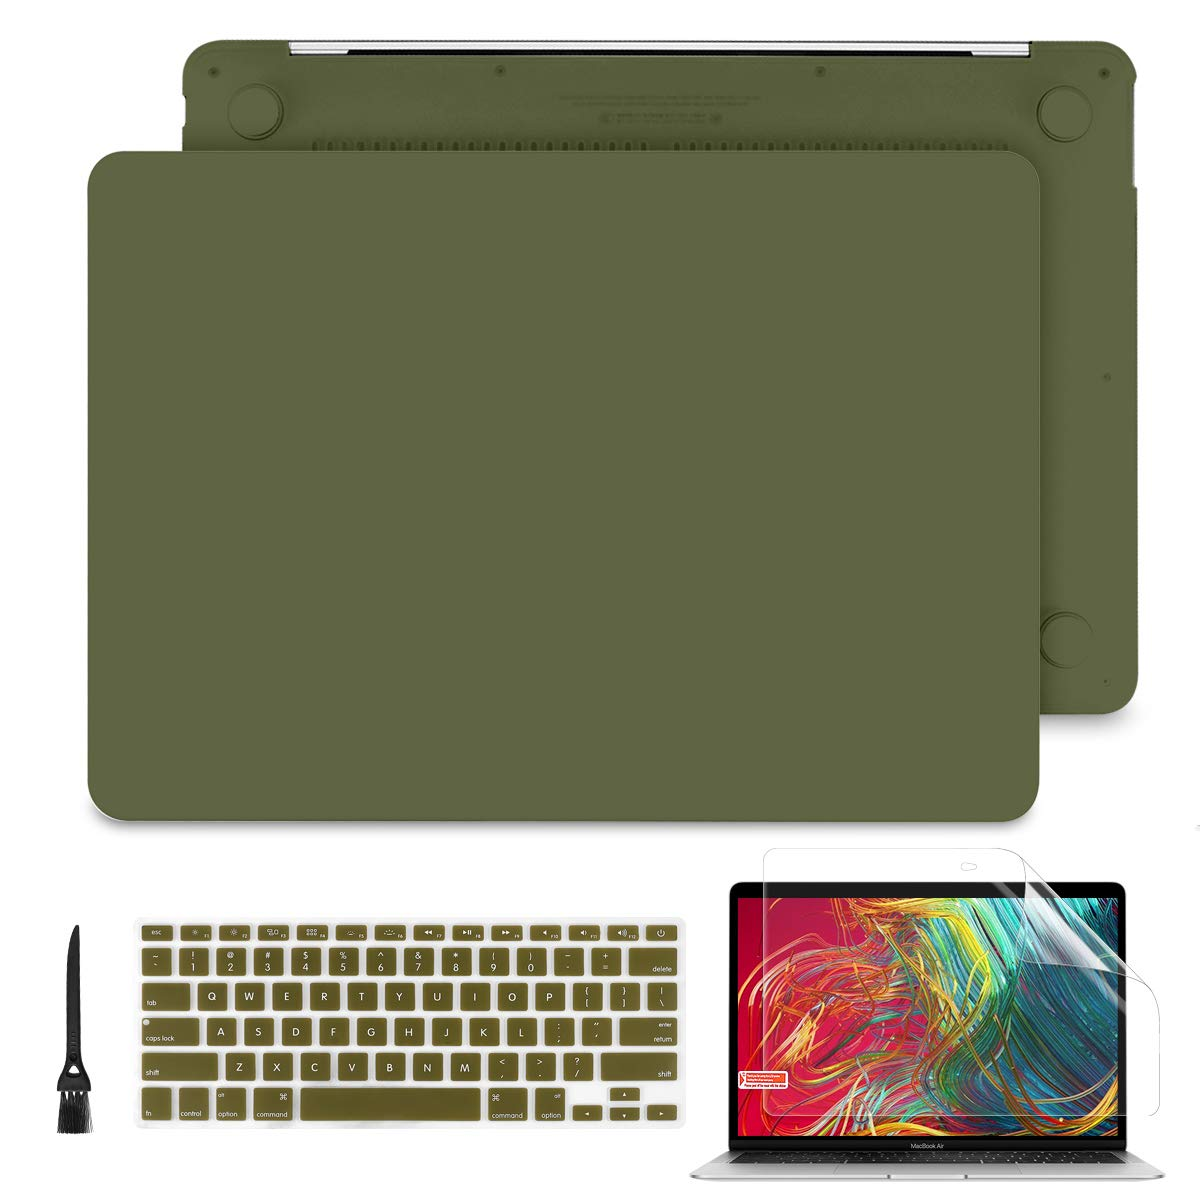 Batianda MacBook Pro 13 inch Case 2019 2018 2017 2016 Model A2159 A1989 A1706 A1708, Soft Touch Plastic Hard Shell Cover for New MacBook Pro 13.3'' Case w/Without Touch Bar (Avocado Green)